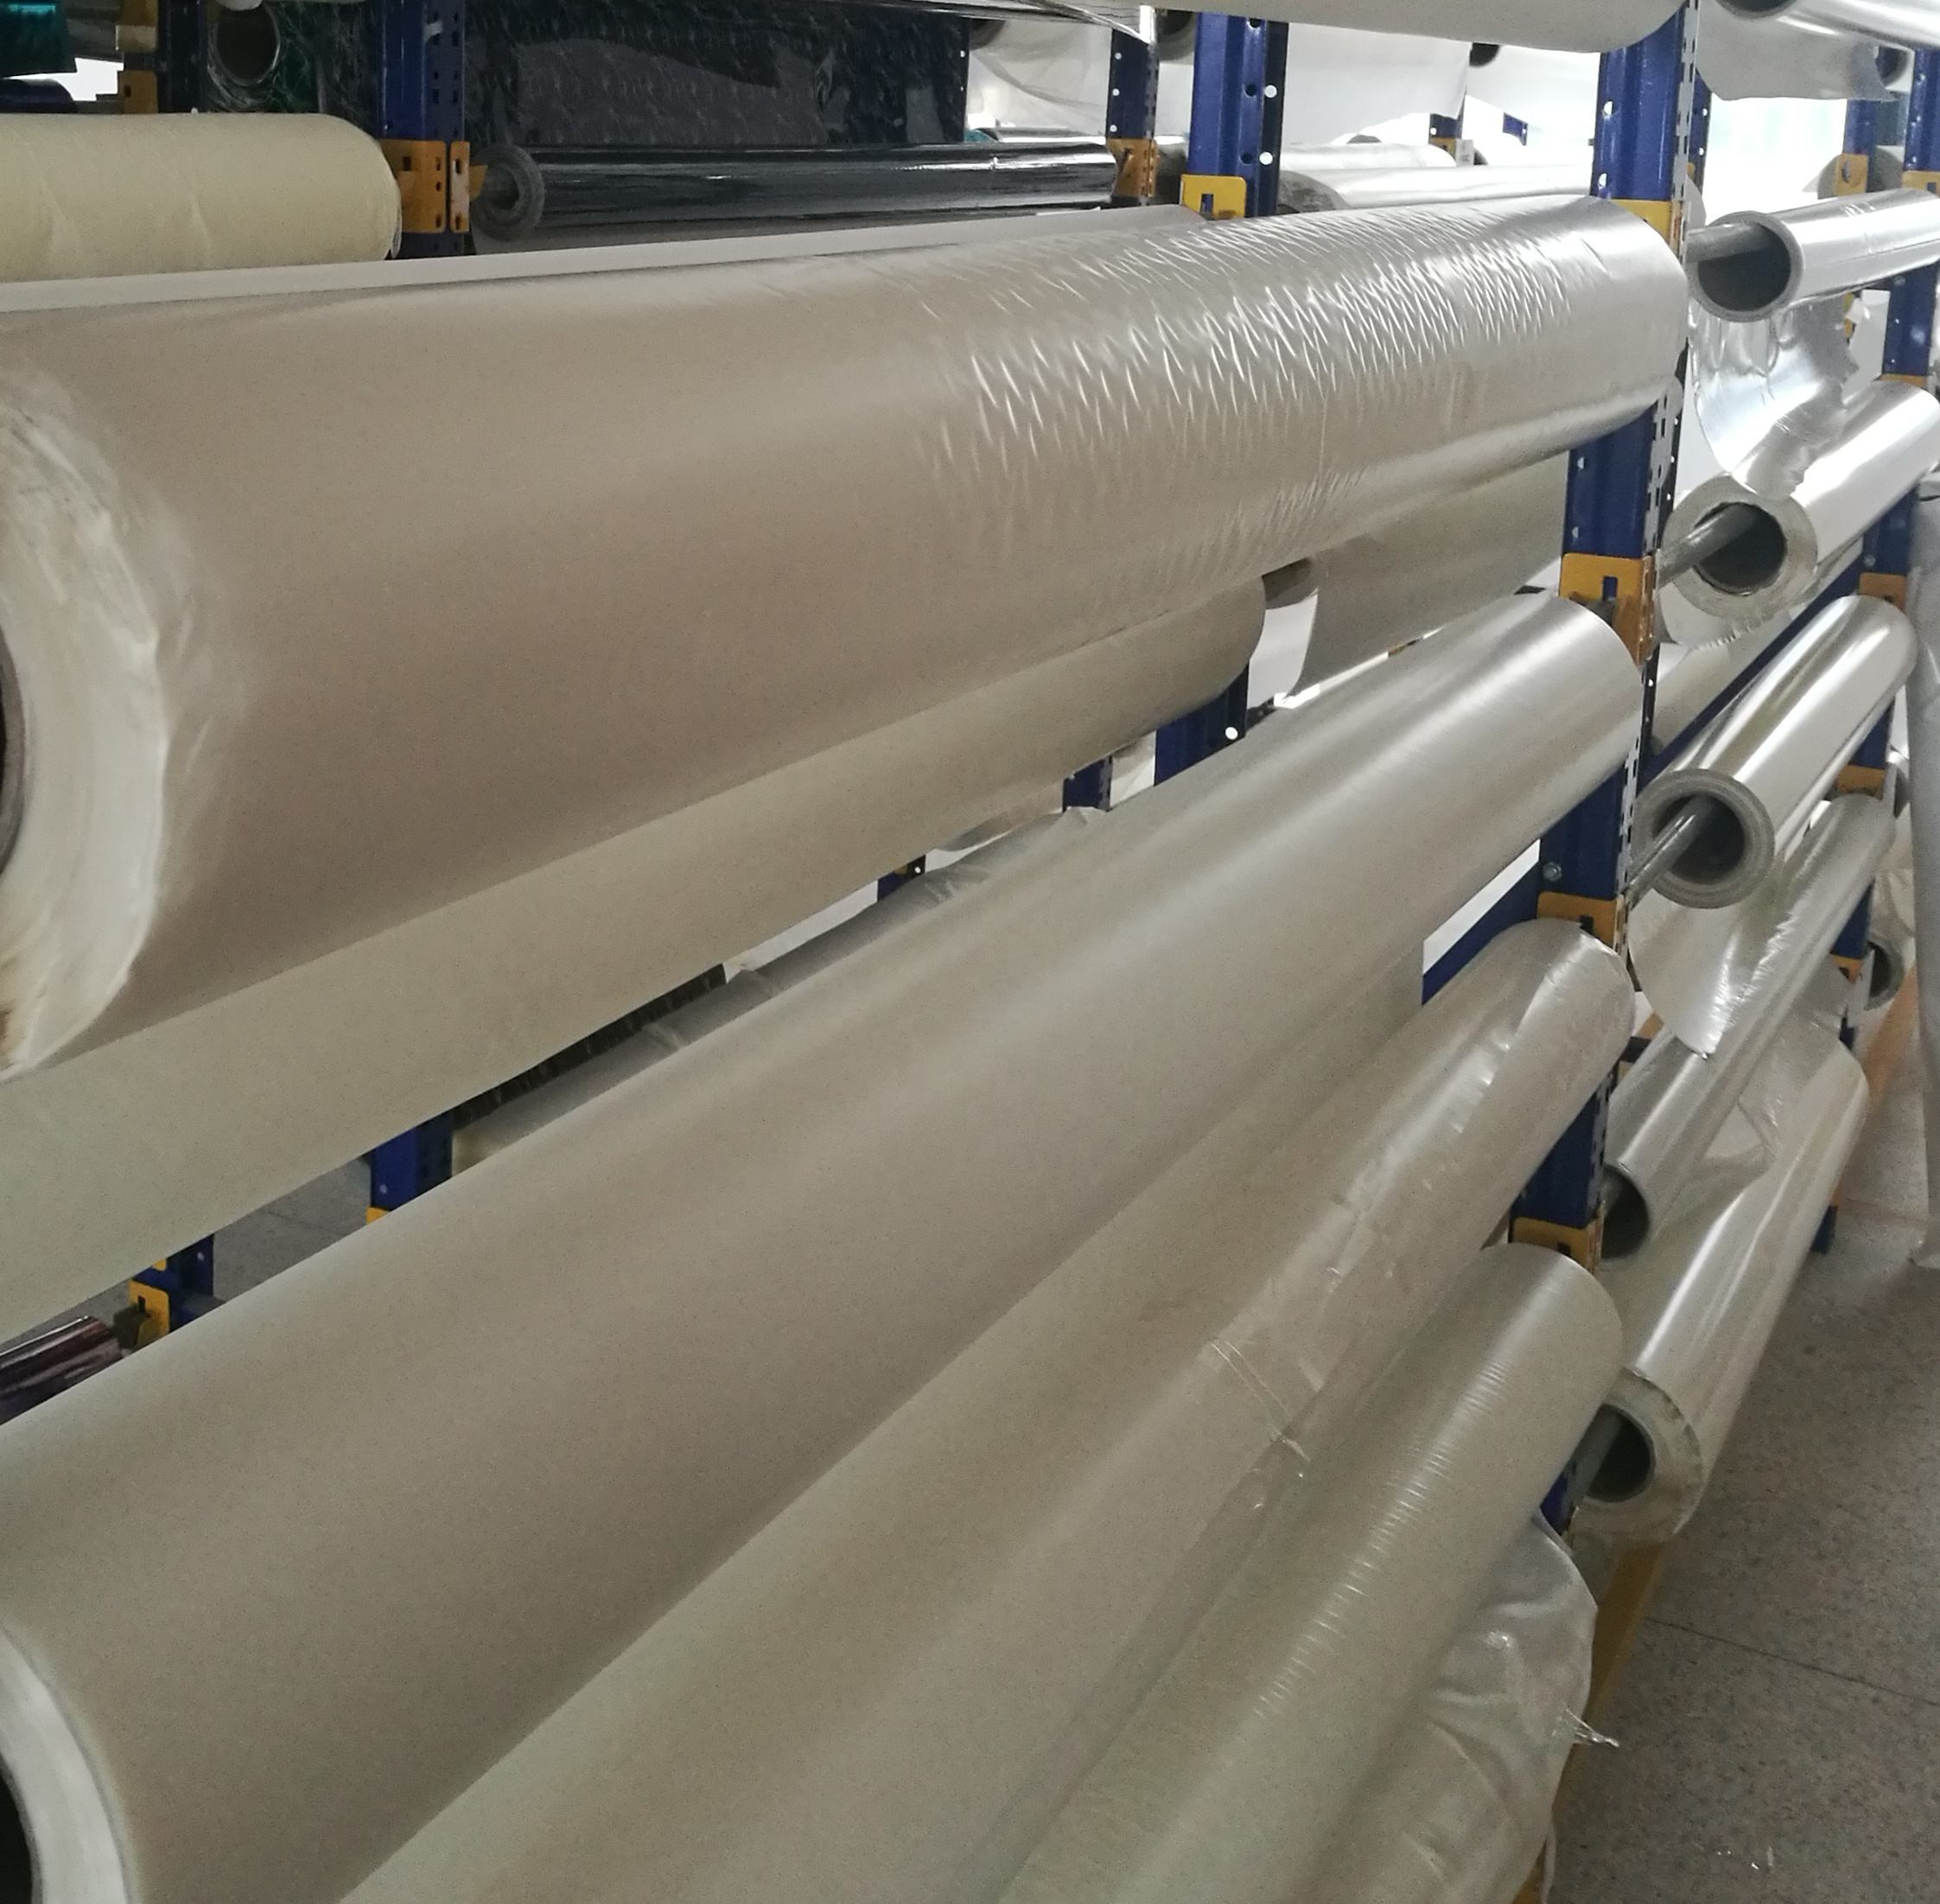 Hot melt adhesive membrane TPU material hot melt adhesive film double sides glue special for fabric and textile laminate